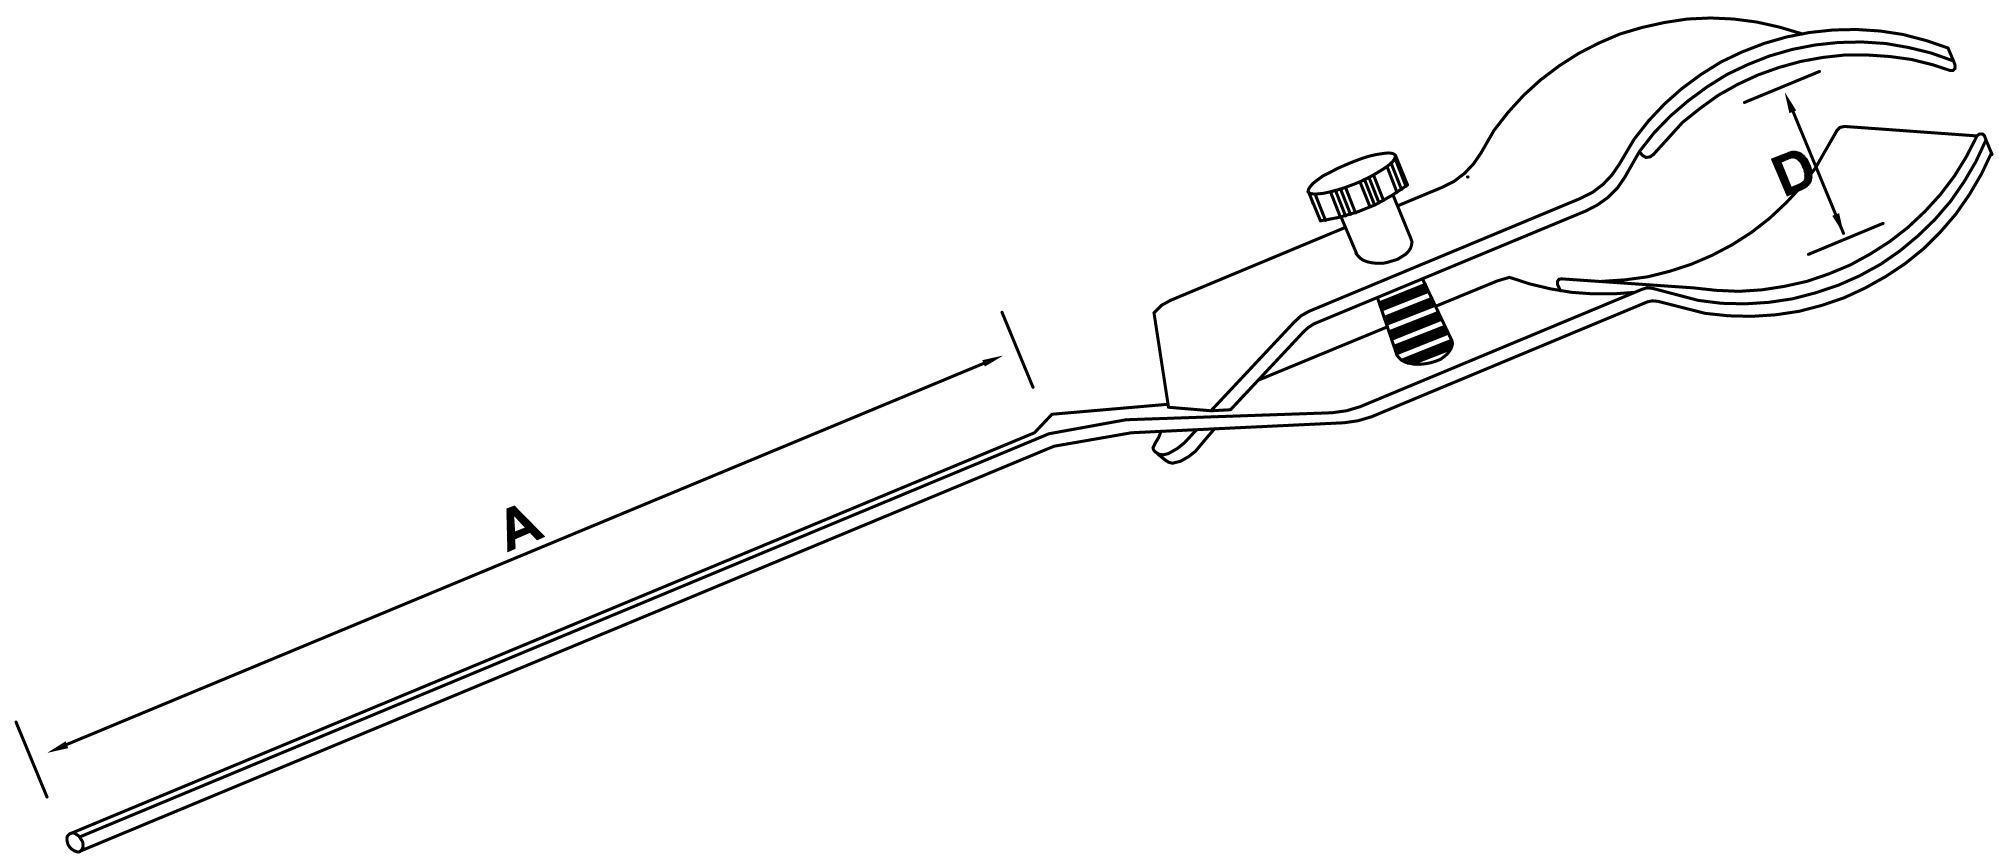 large flask clamp - schemat